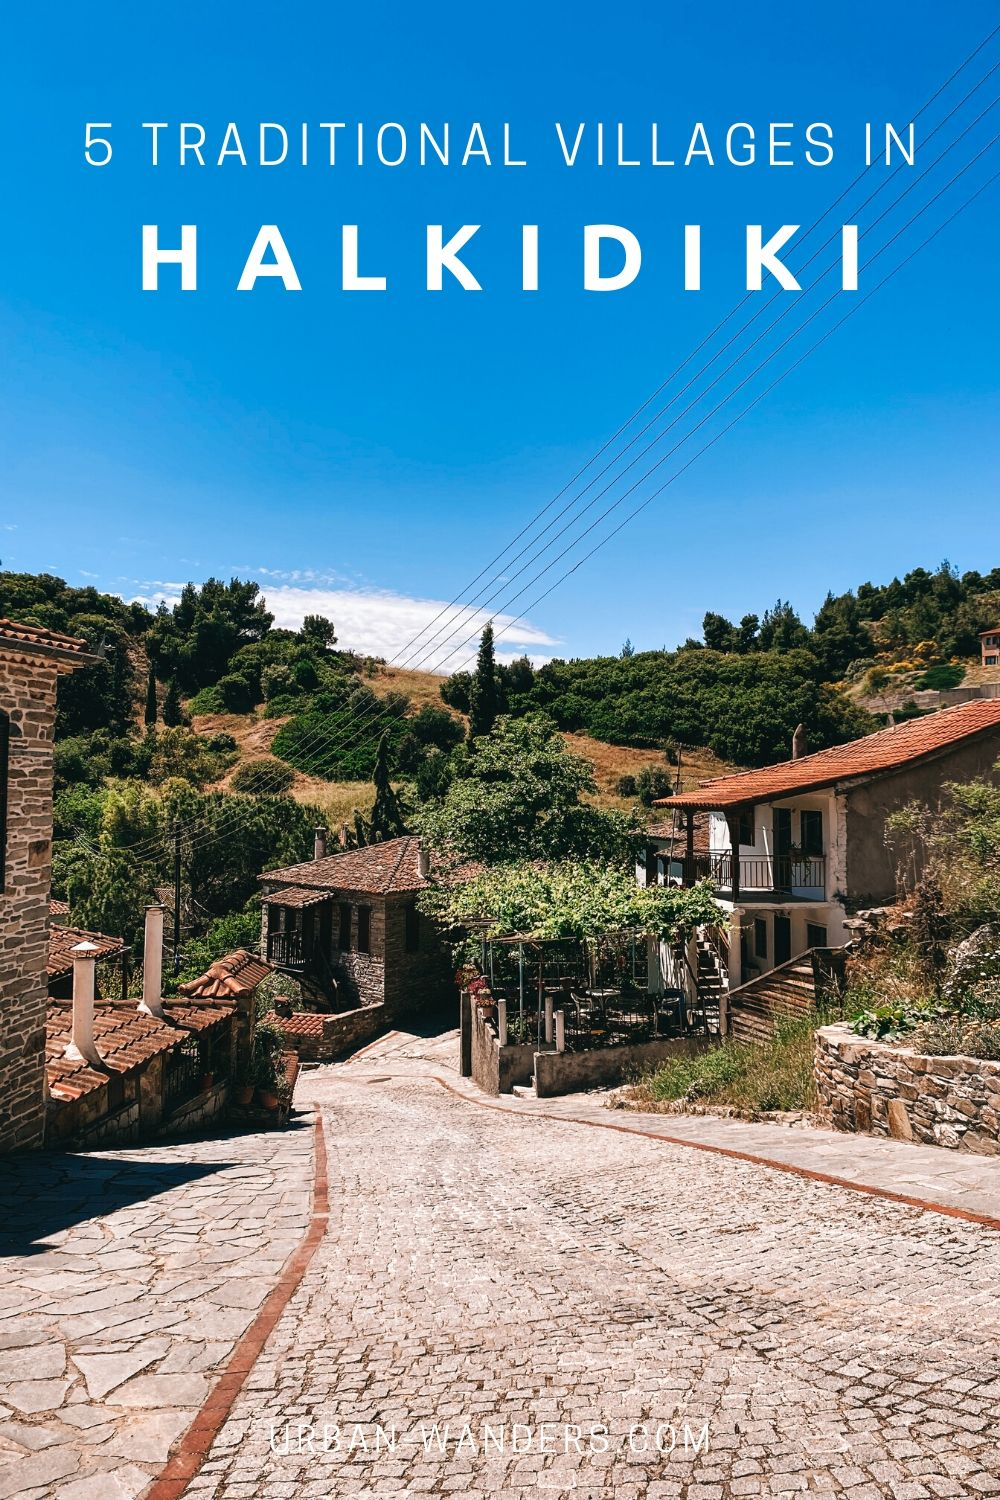 5 Traditional Villages in Halkidiki